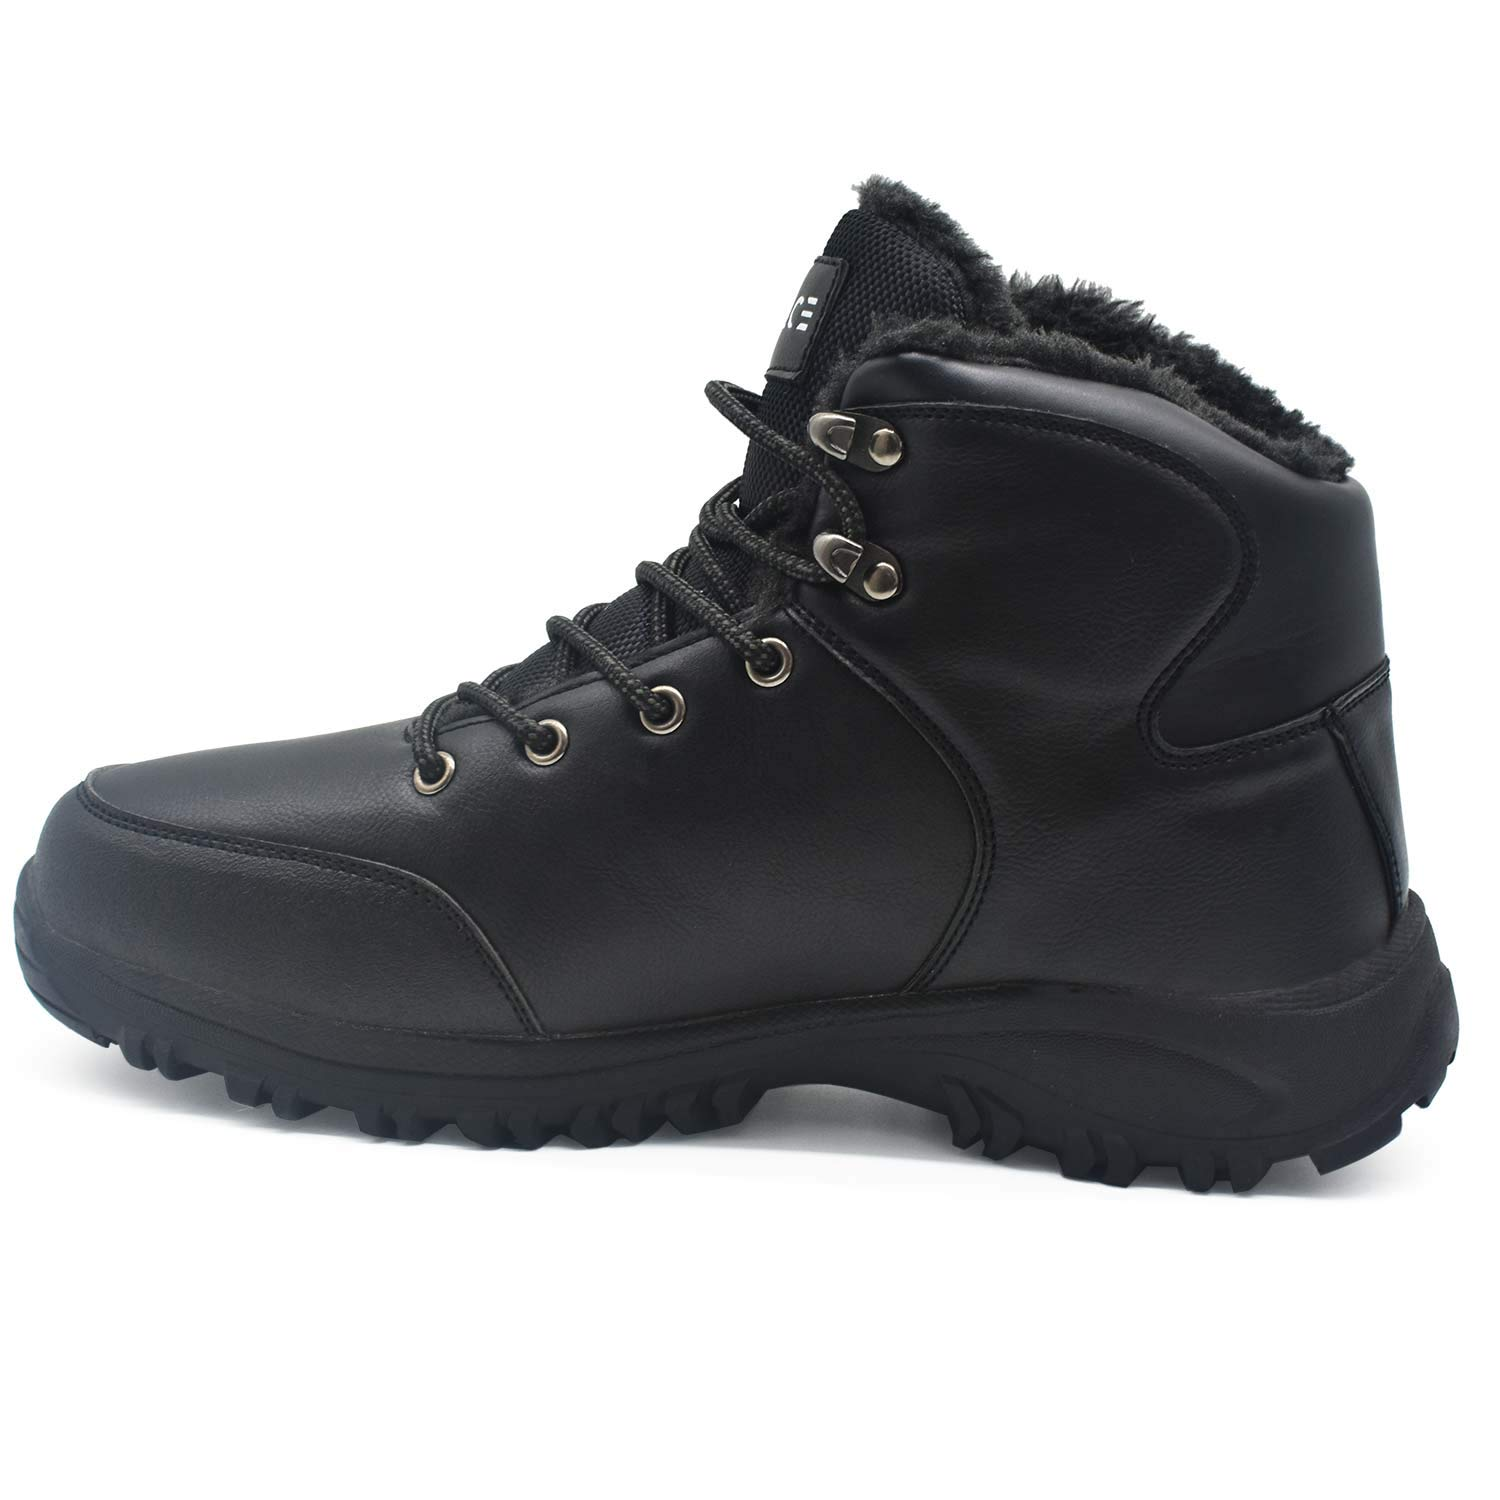 COFACE Mens Winter Snow Hiking Boots Leather Warm Faux Fur Lined Outdoor Walking Shoes